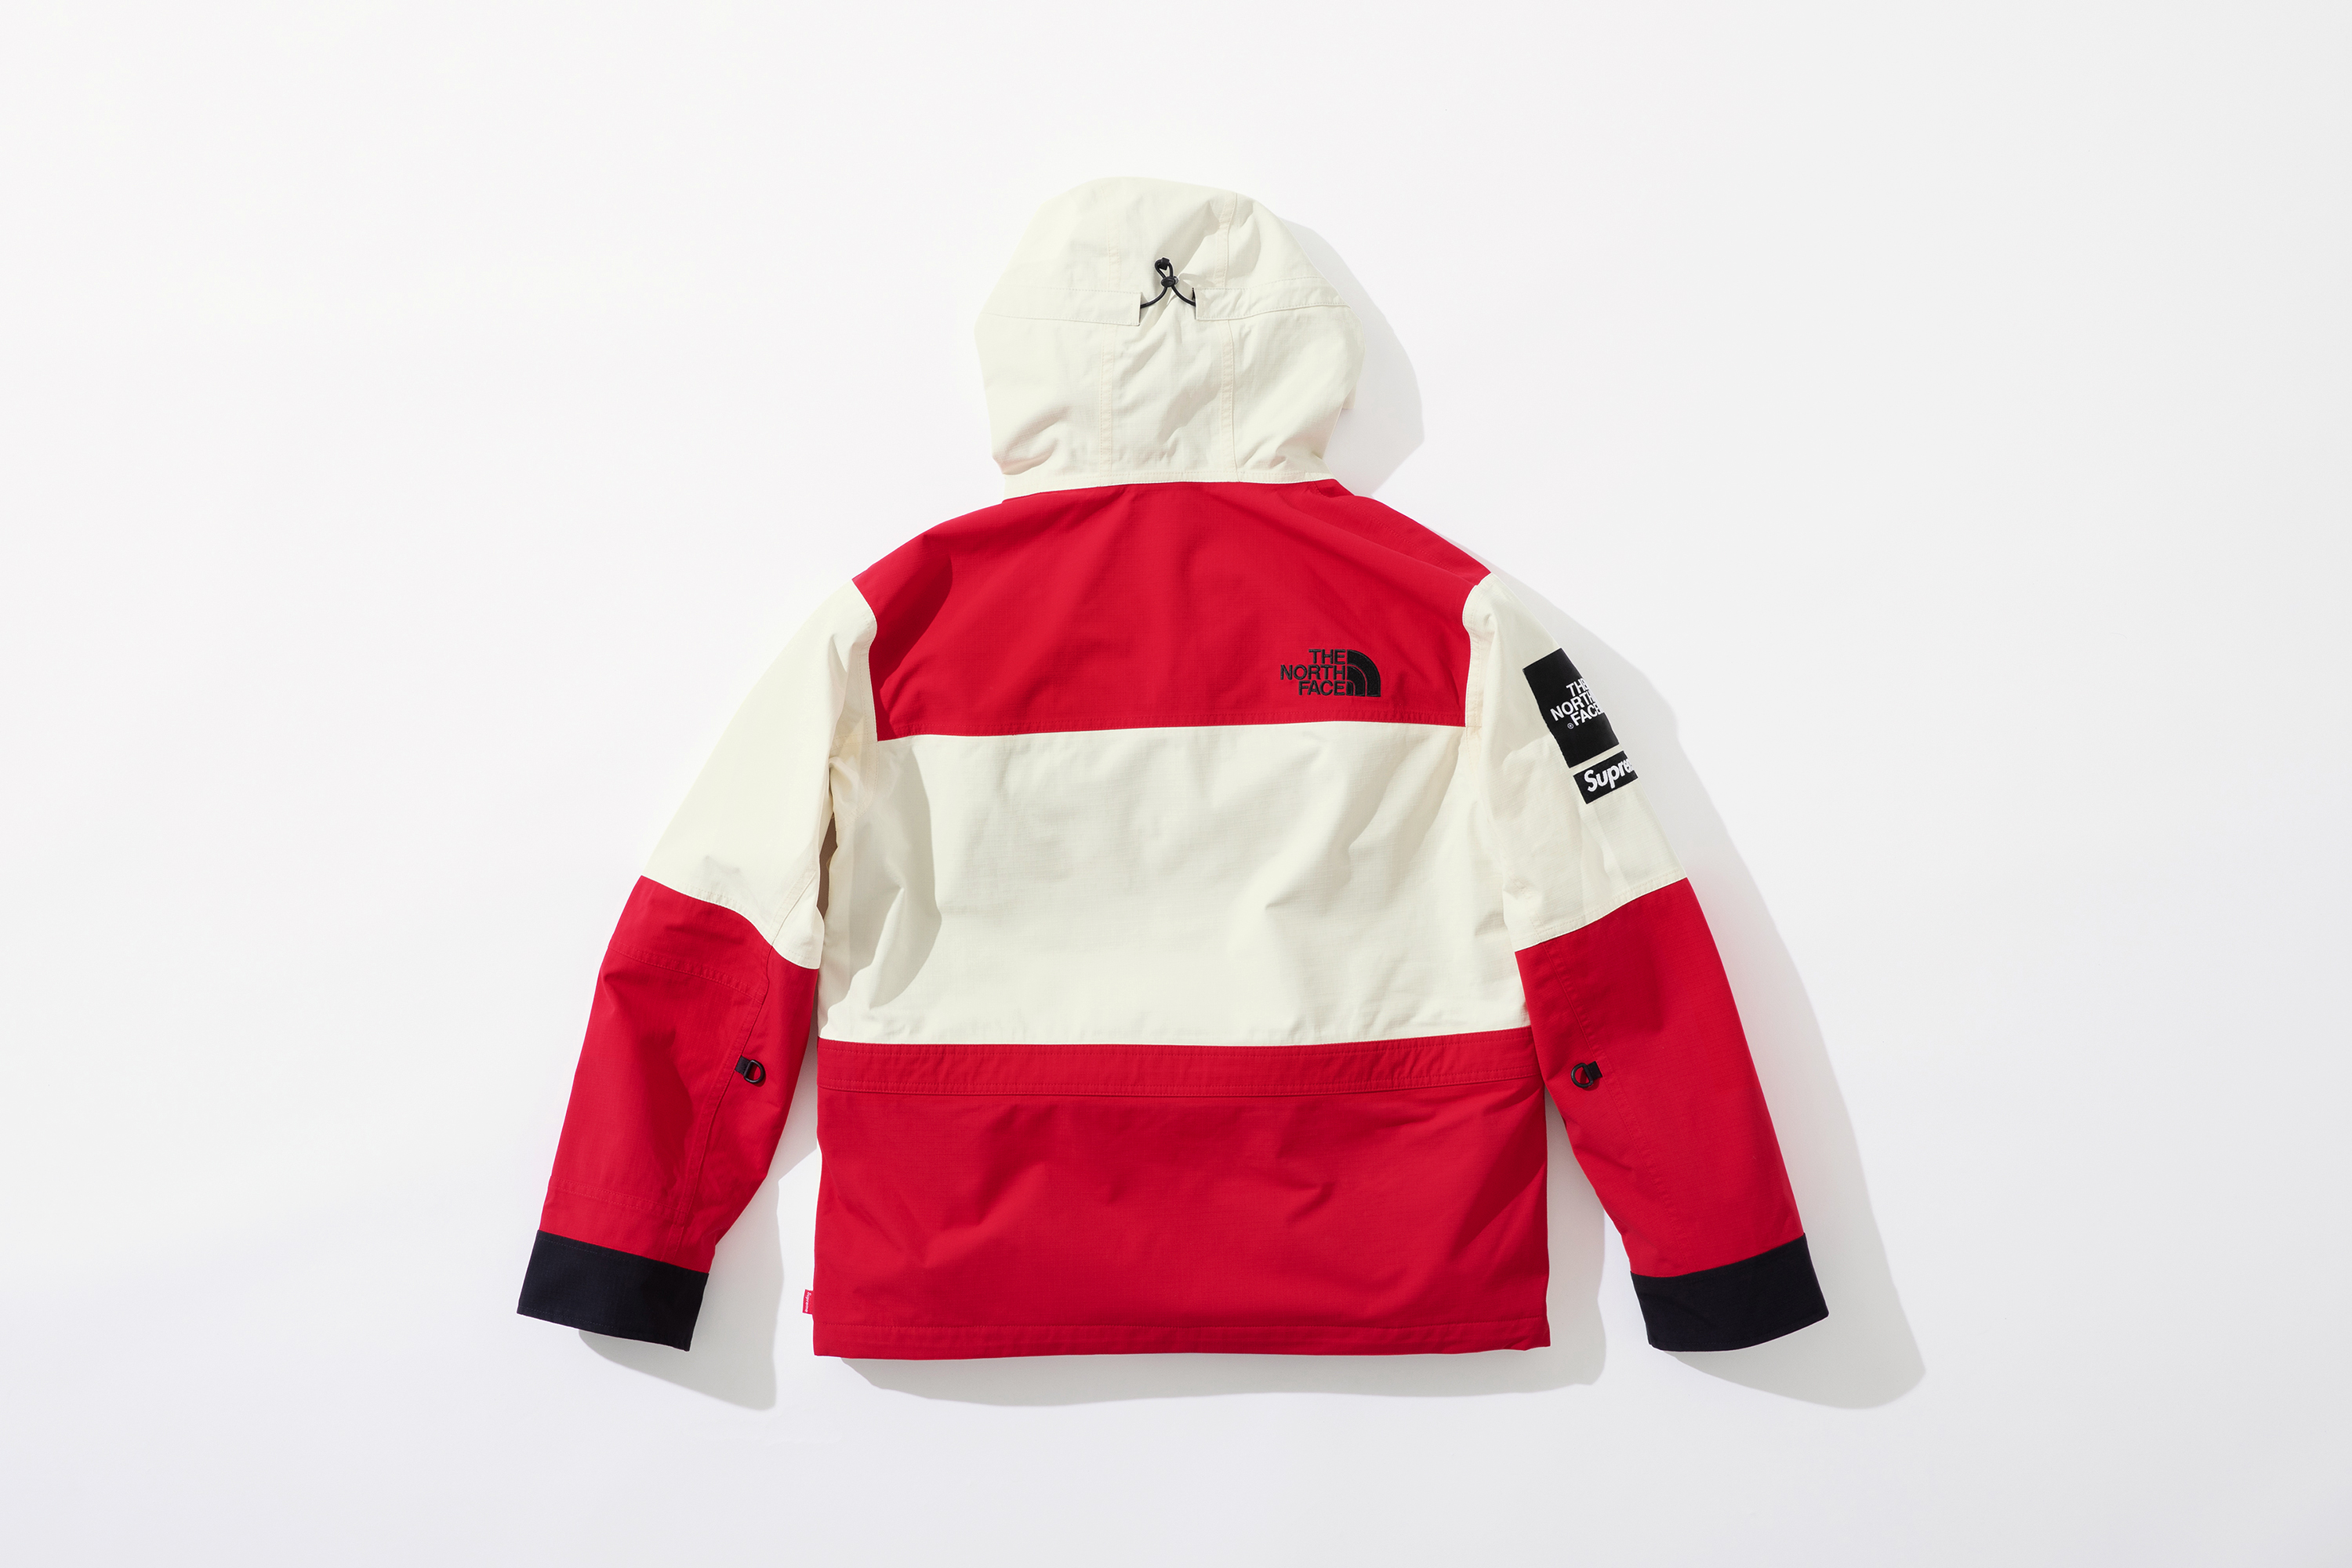 supreme-the-north-face-2018aw-2nd-delivery-release-20181201-week15-expedition-jacket